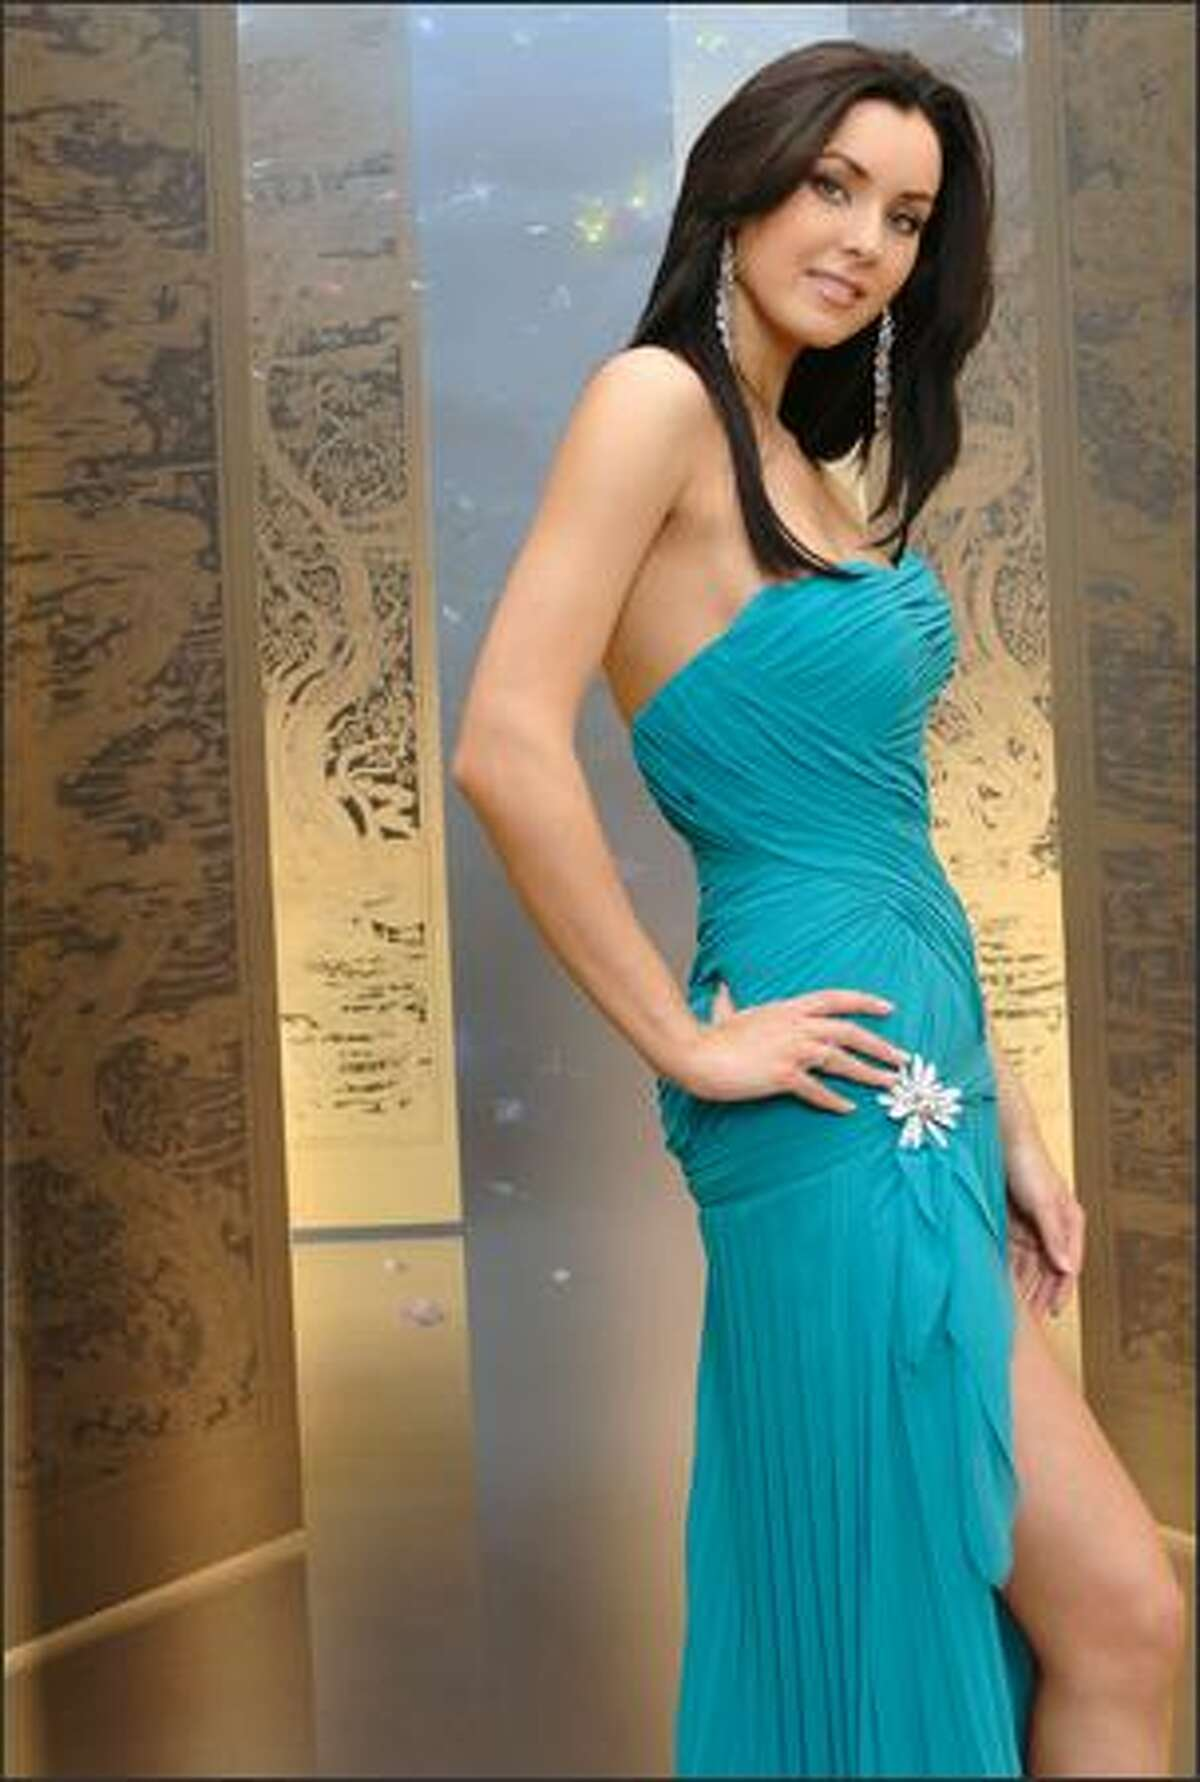 Natalie Glebova, Miss Canada, poses in an evening gown at the Devarana Spa at the Dusit Thani hotel during registration and fittings for the Miss Universe 2005 competition in Bangkok, Thailand on May 11.